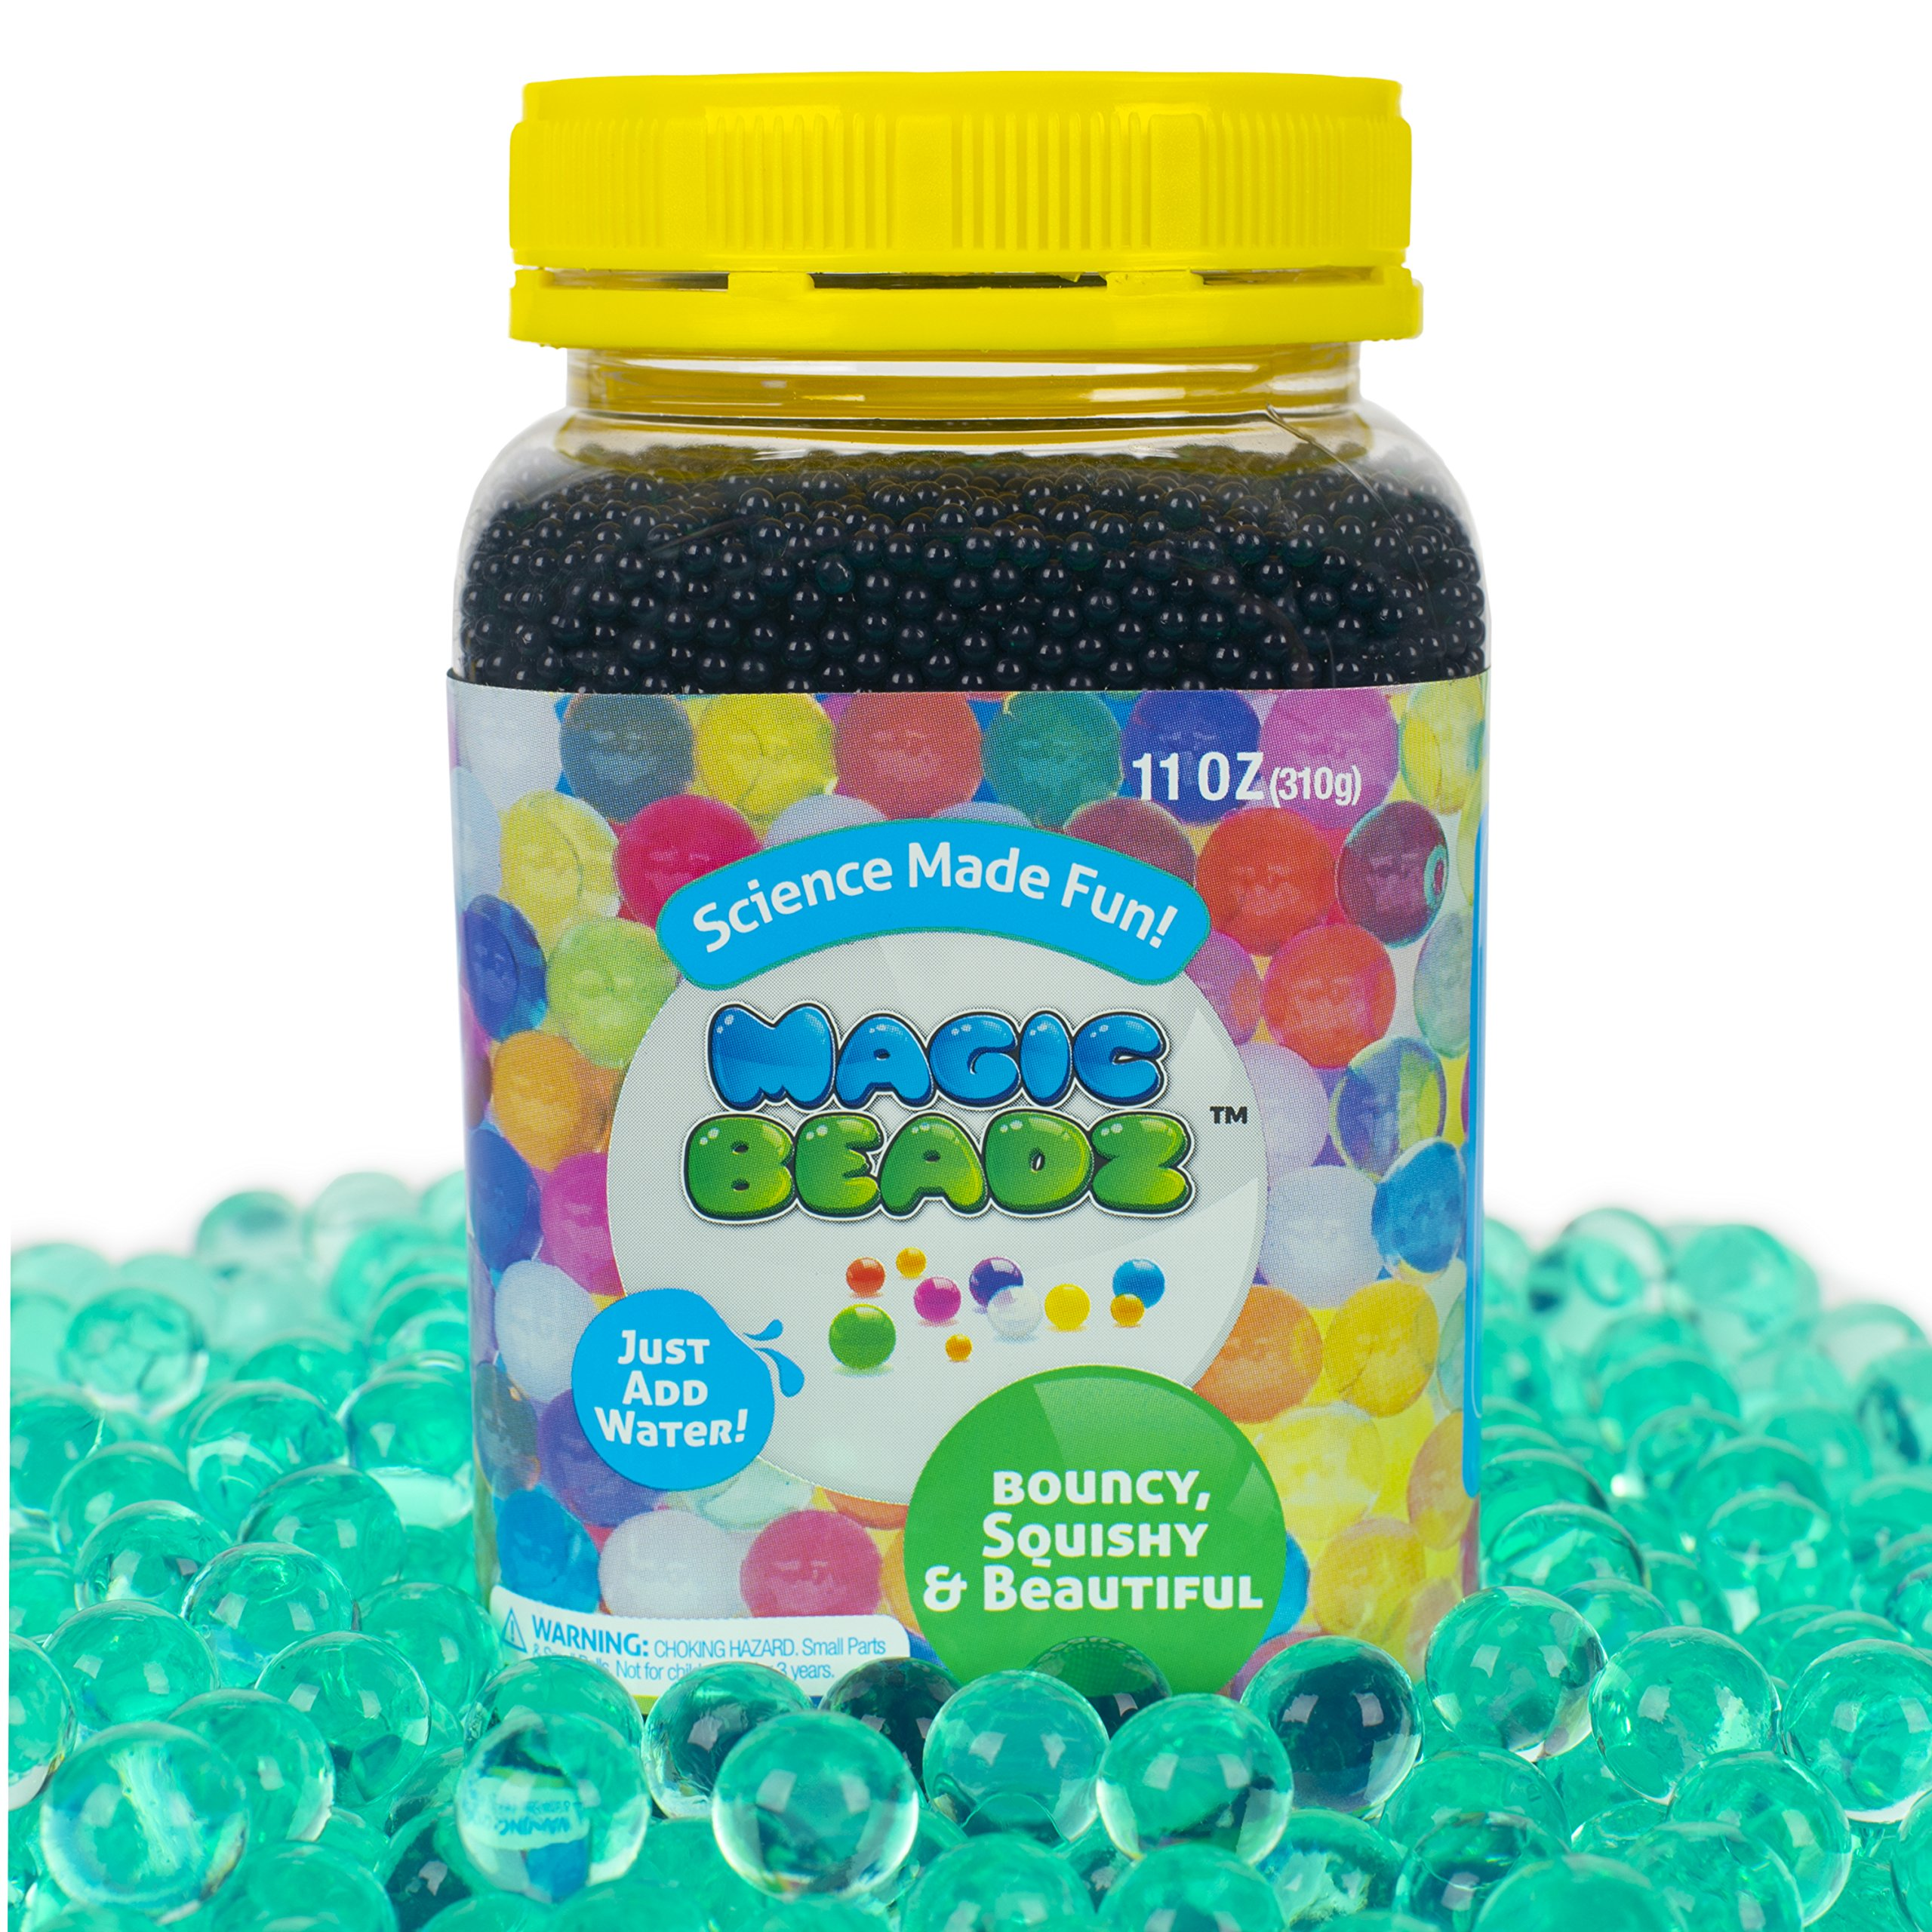 Magic Beadz Turquoise Green Gel Water Beads - Transparent Jelly Pearls - Vase Filler - Wedding Centerpiece - Candles - Flower Arrangements - Over 30,000 Beads - 11oz Jar Makes Over Ten Gallons